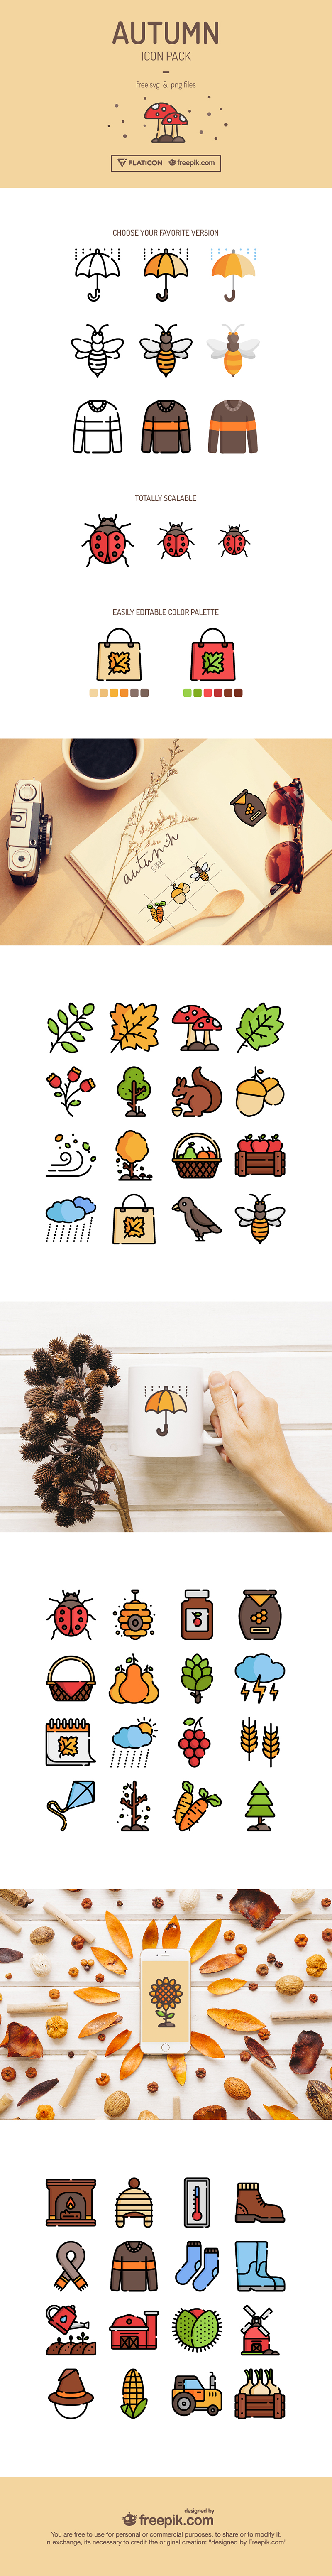 Autumn Icon Pack Design